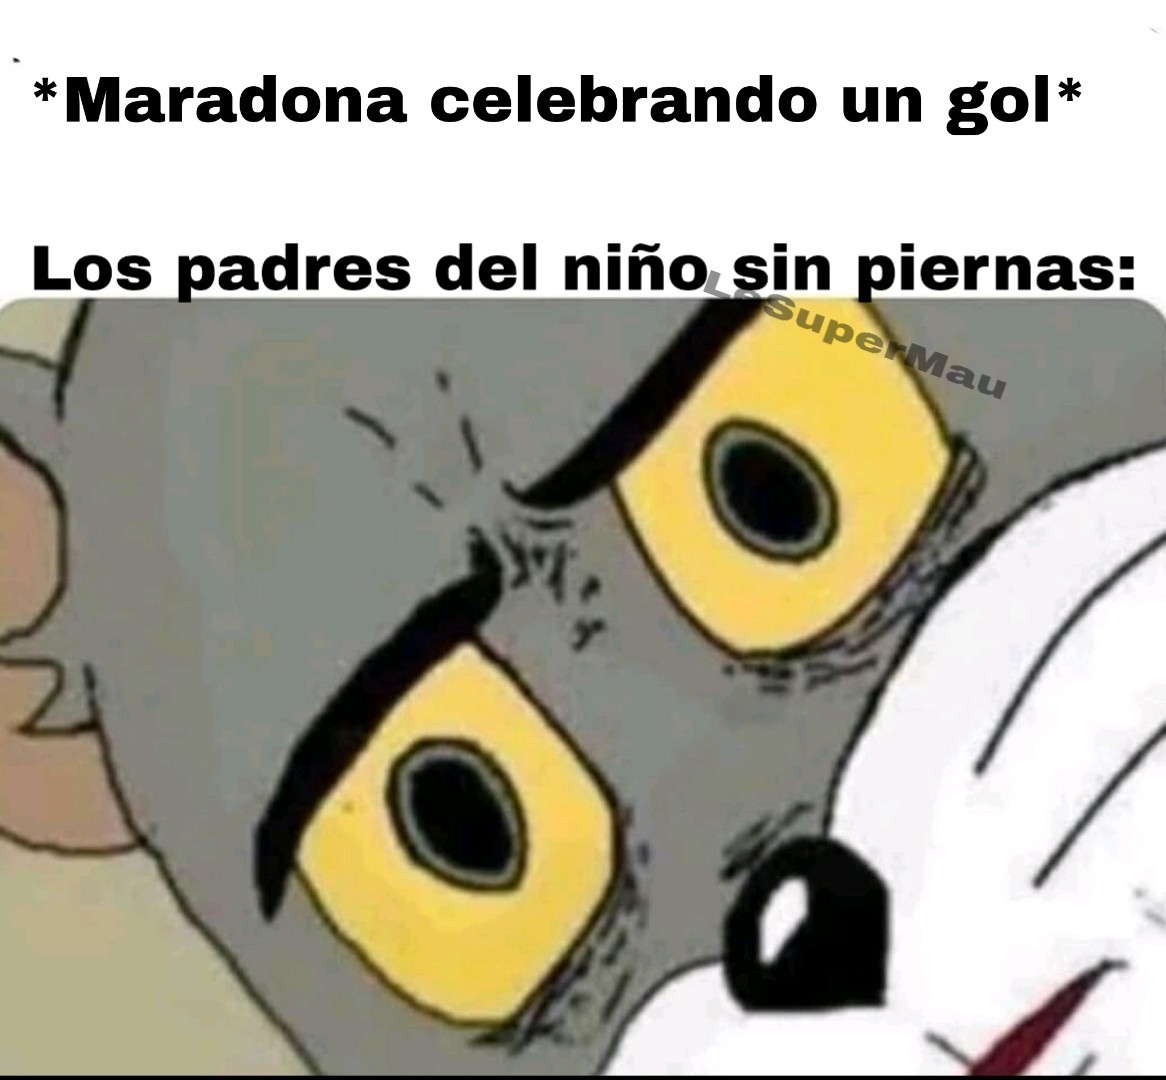 Aló referencias - meme